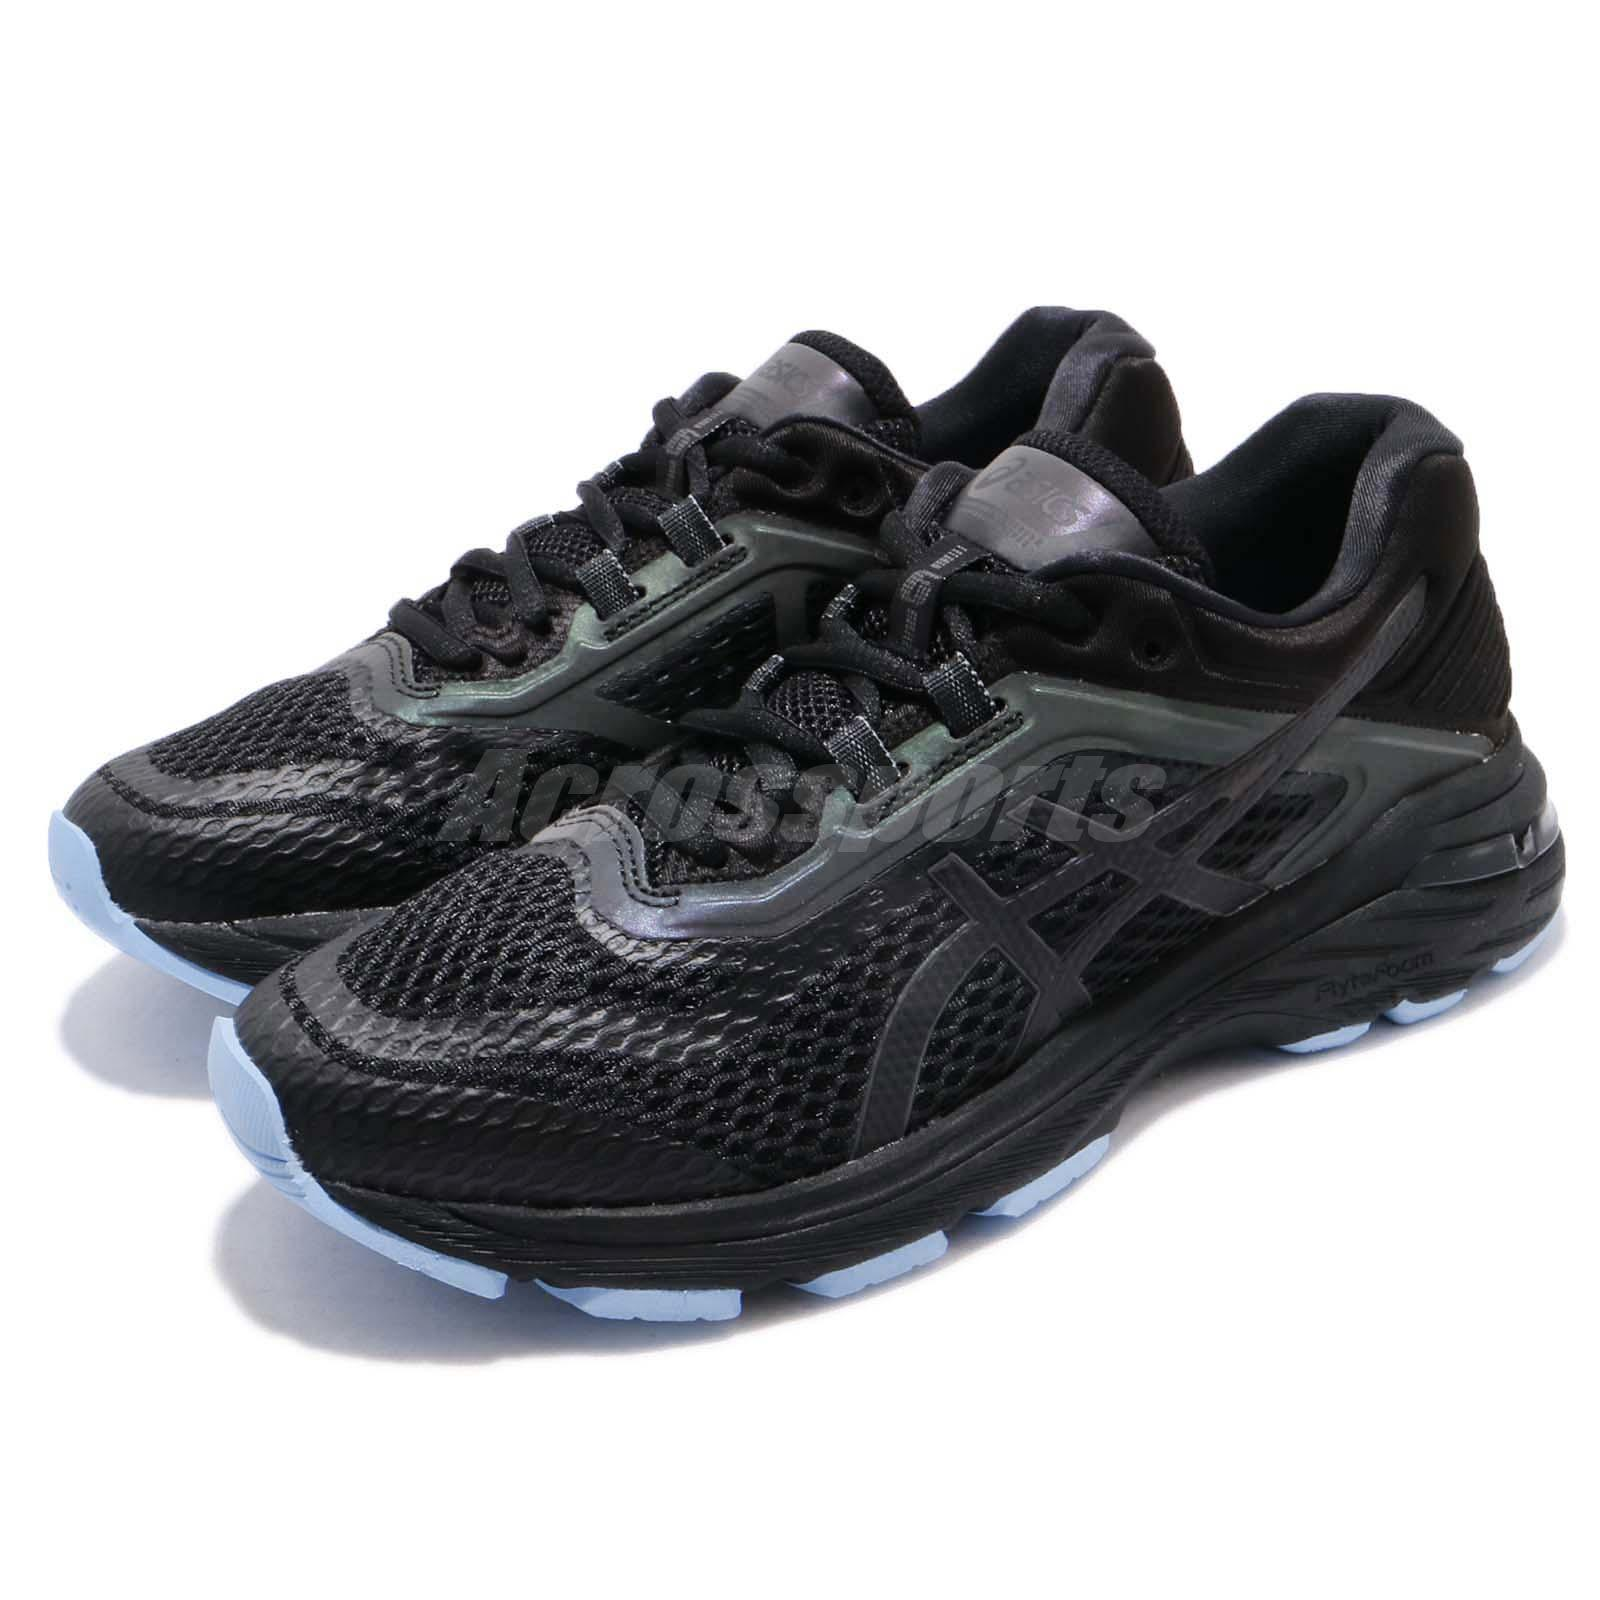 Details about Asics GT 2000 6 Lite Show Black Blue Reflective Women Running Shoes 1012A169 001